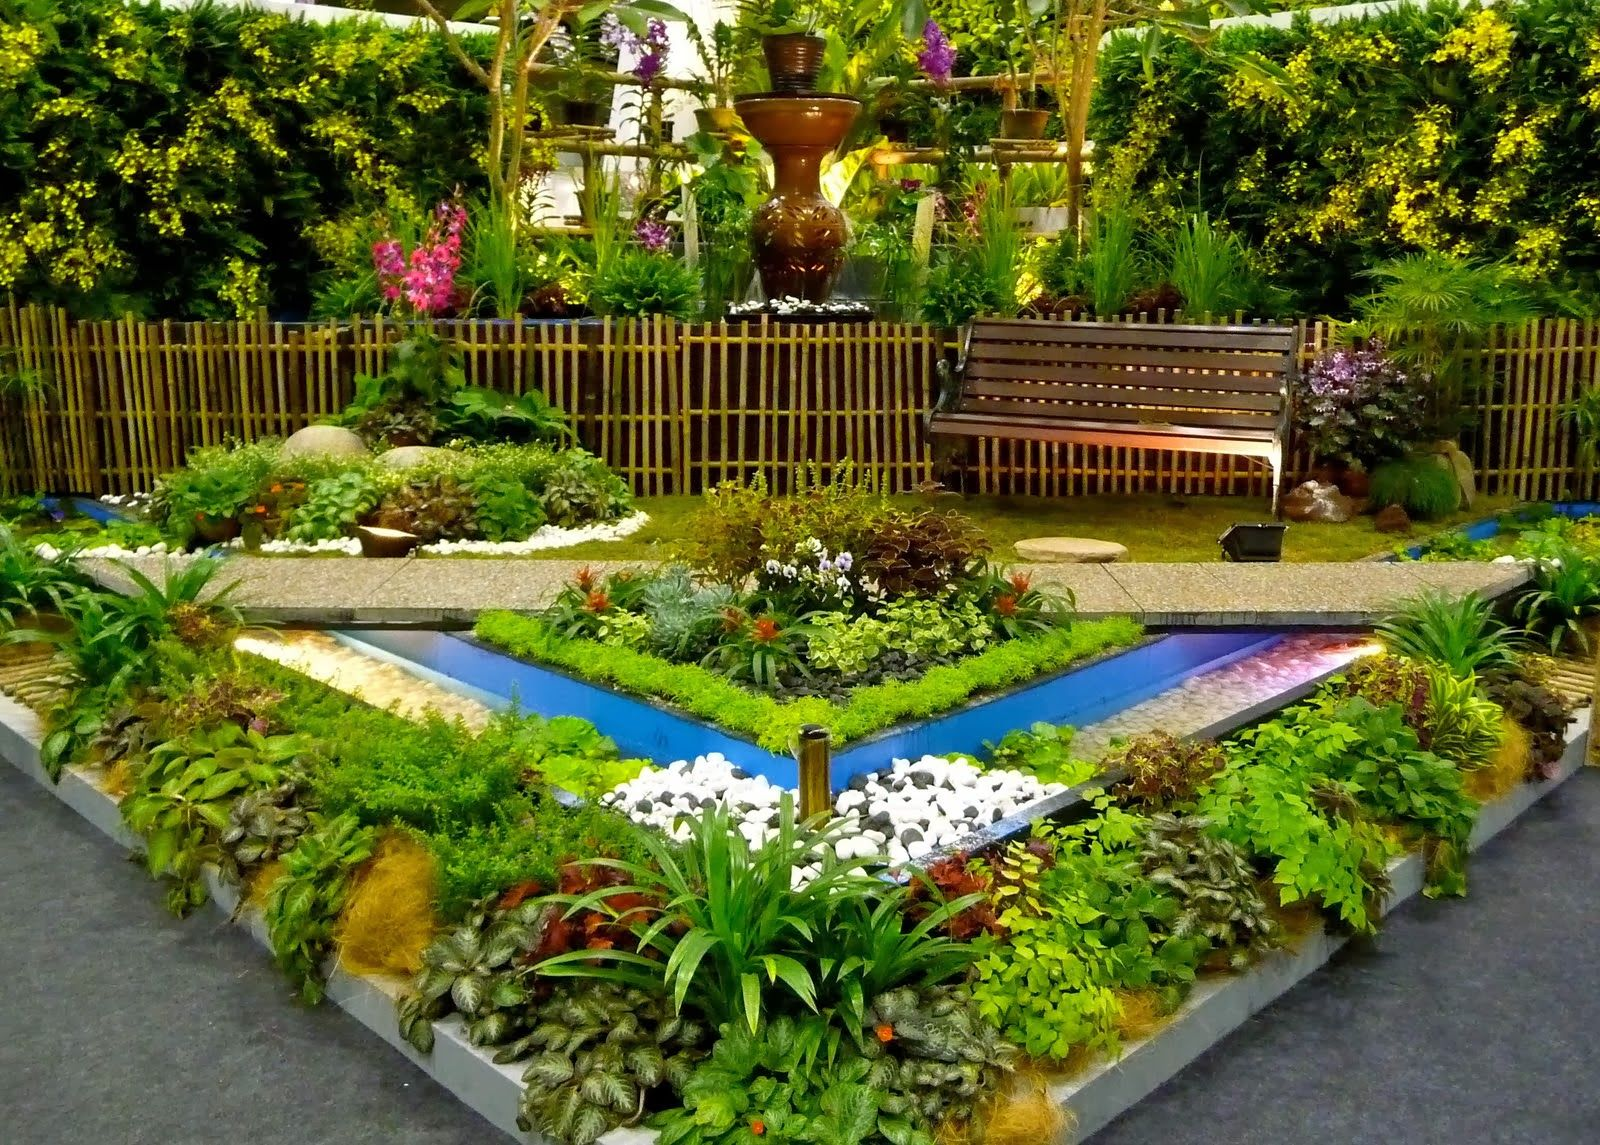 Best landscaping ideas i have ever seen wow design for Garden and landscaping ideas